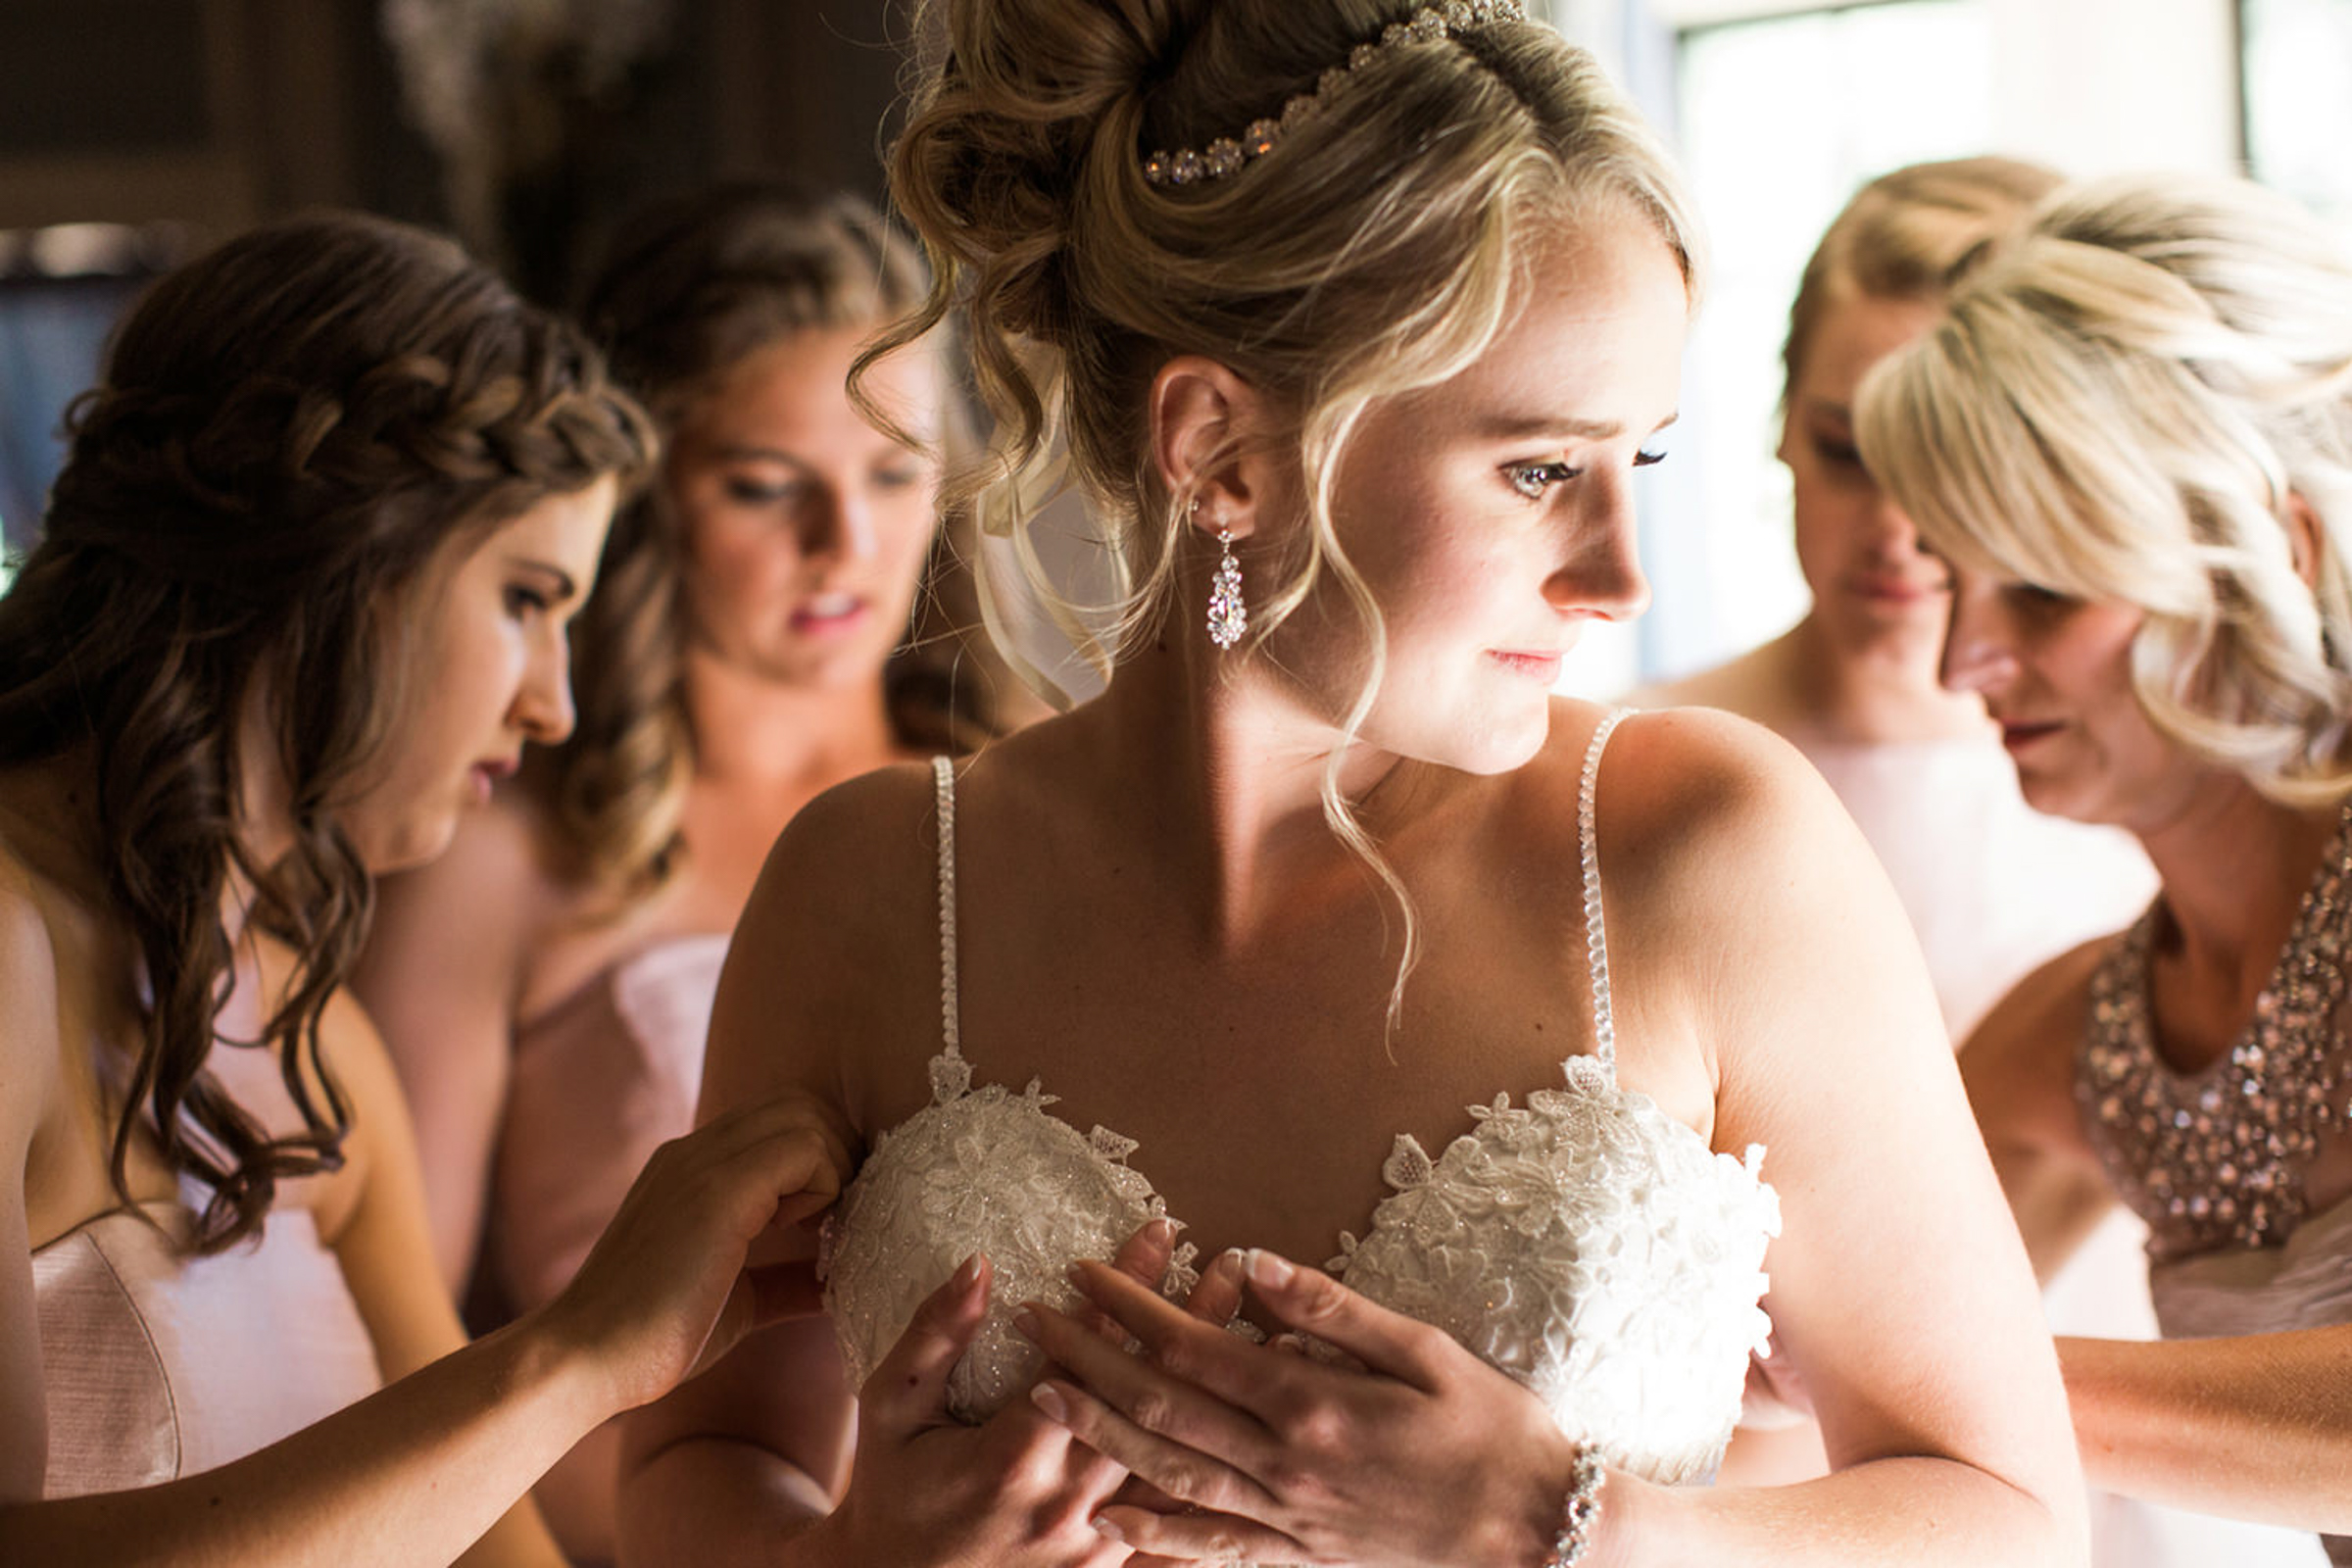 bridesmaids-and-mom-helping-bride-get-ready-stephanie-cristalli-photography